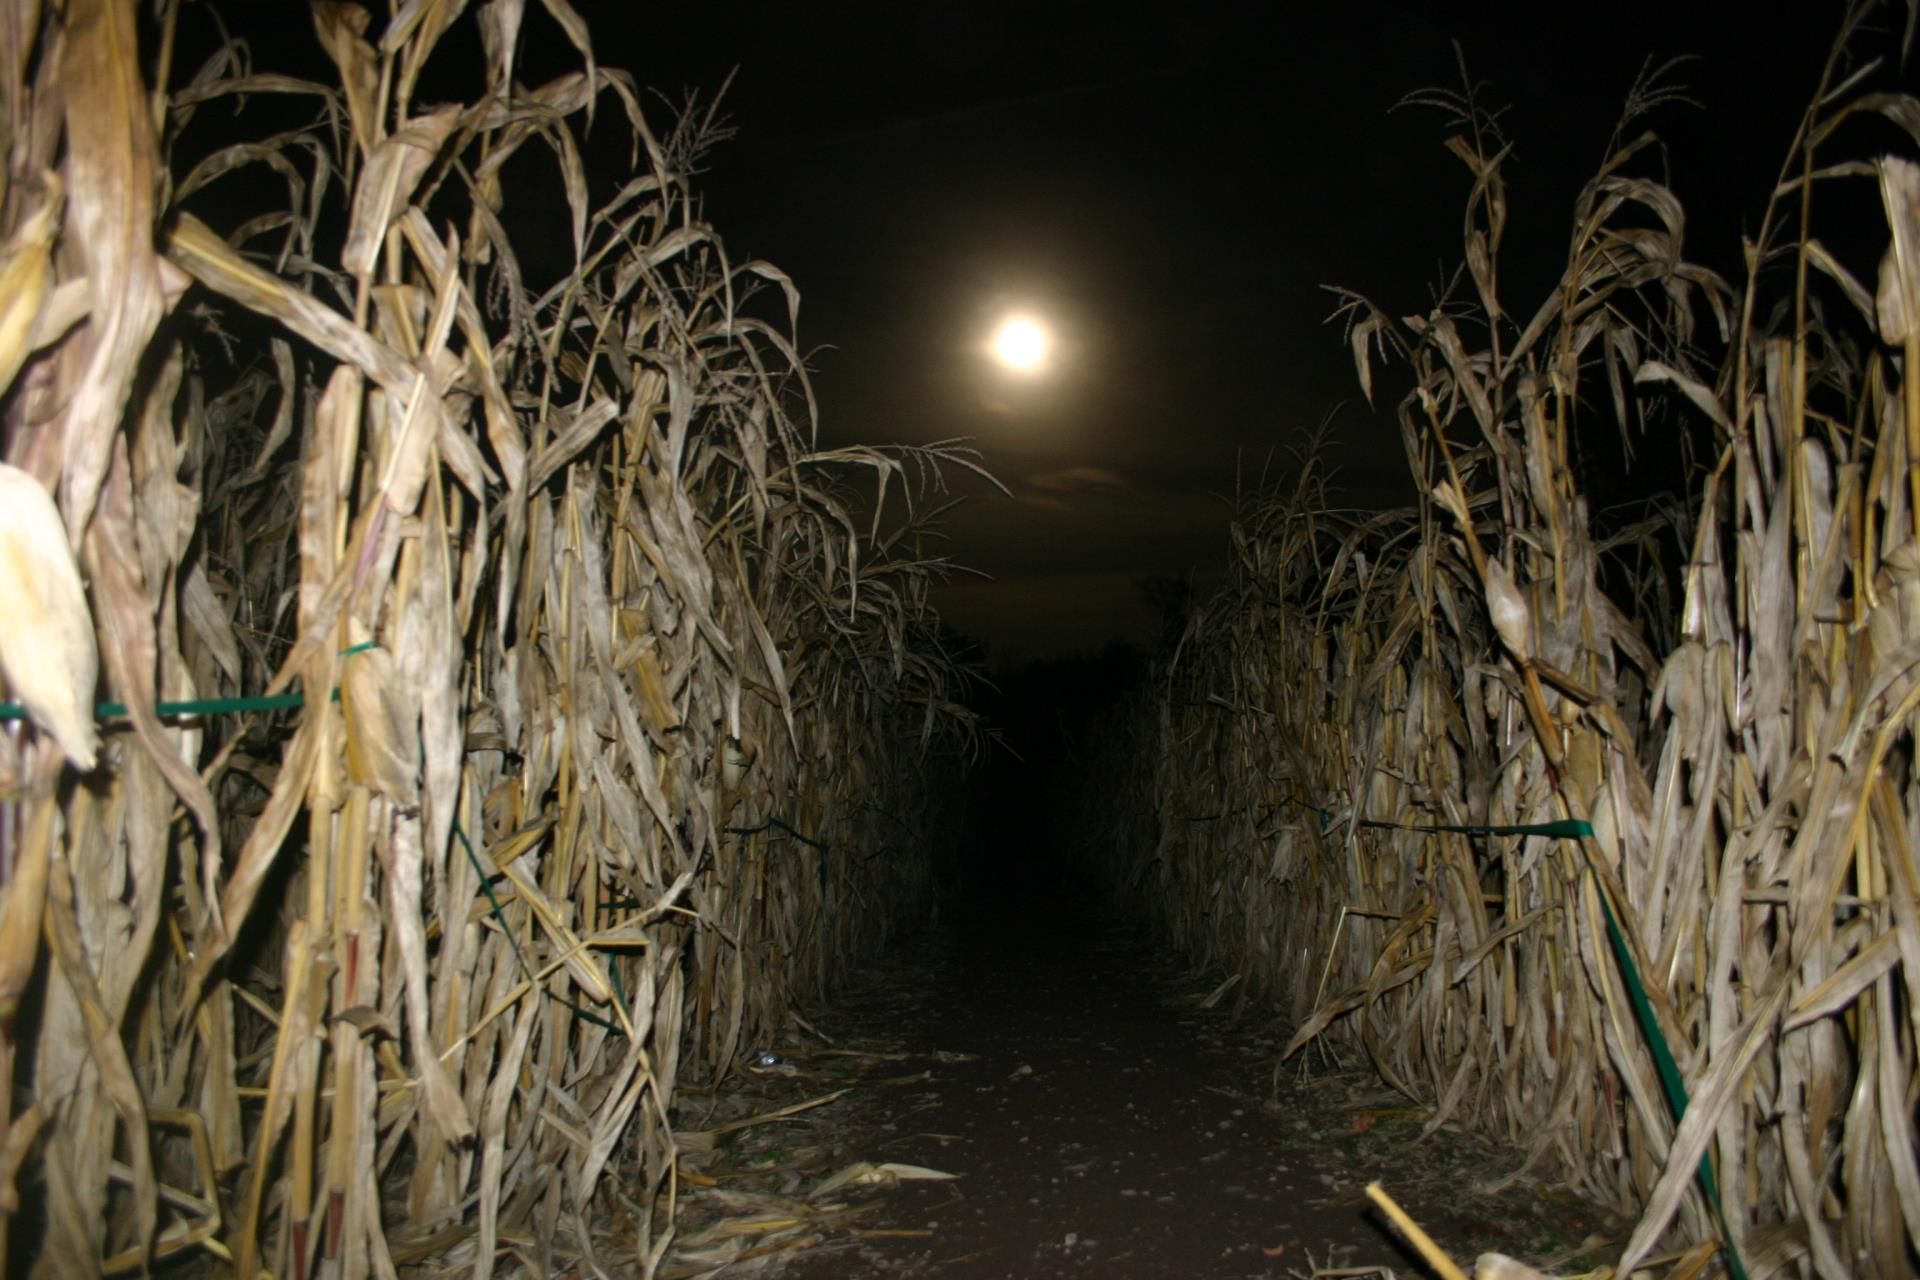 Moonlight corn maze